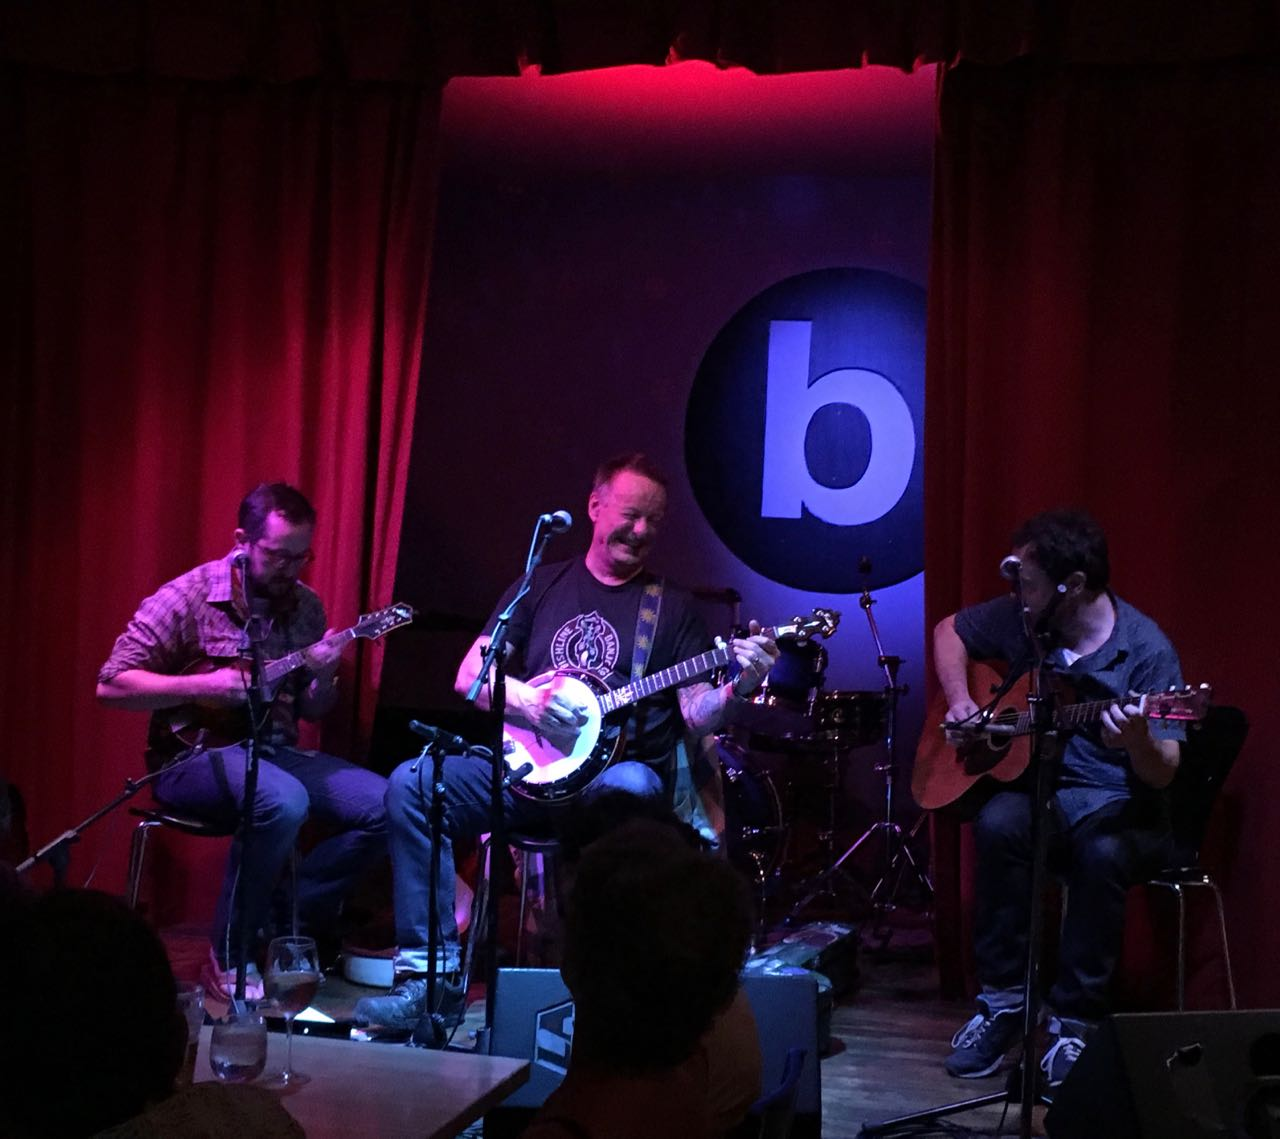 Danny Barnes - banjo, Joe Walsh - mandolin, Grant Gordy - guitar on stage at b side Oneonta